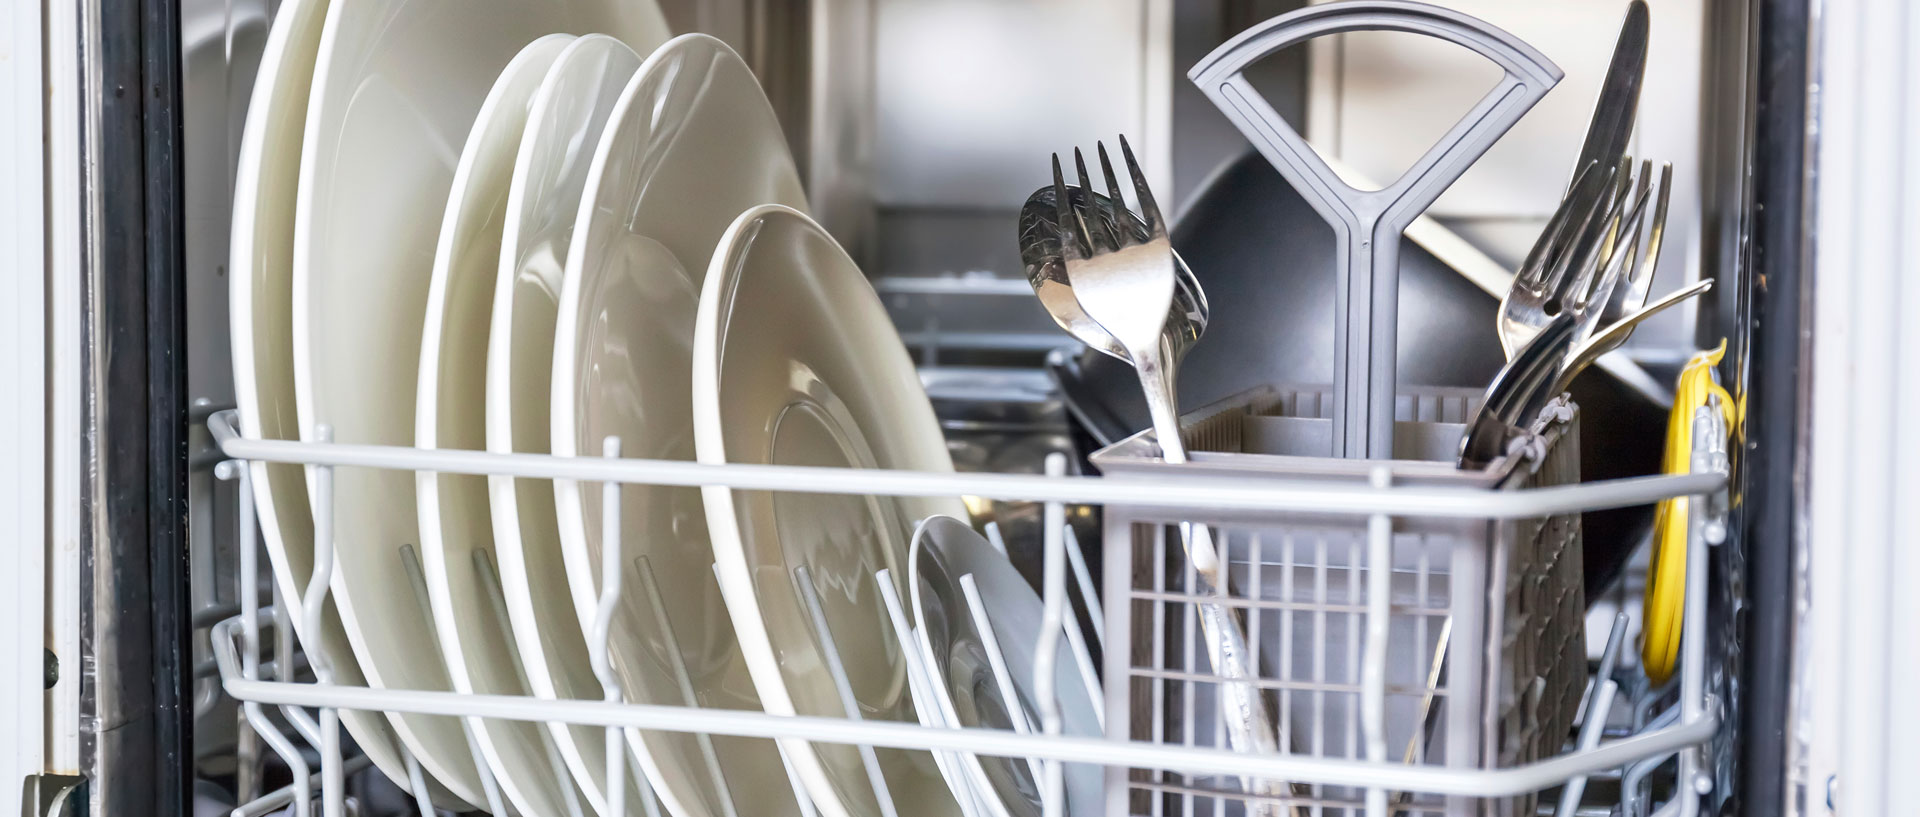 pre rinsing your dishes before putting them in the dishwasher more from consumer reports